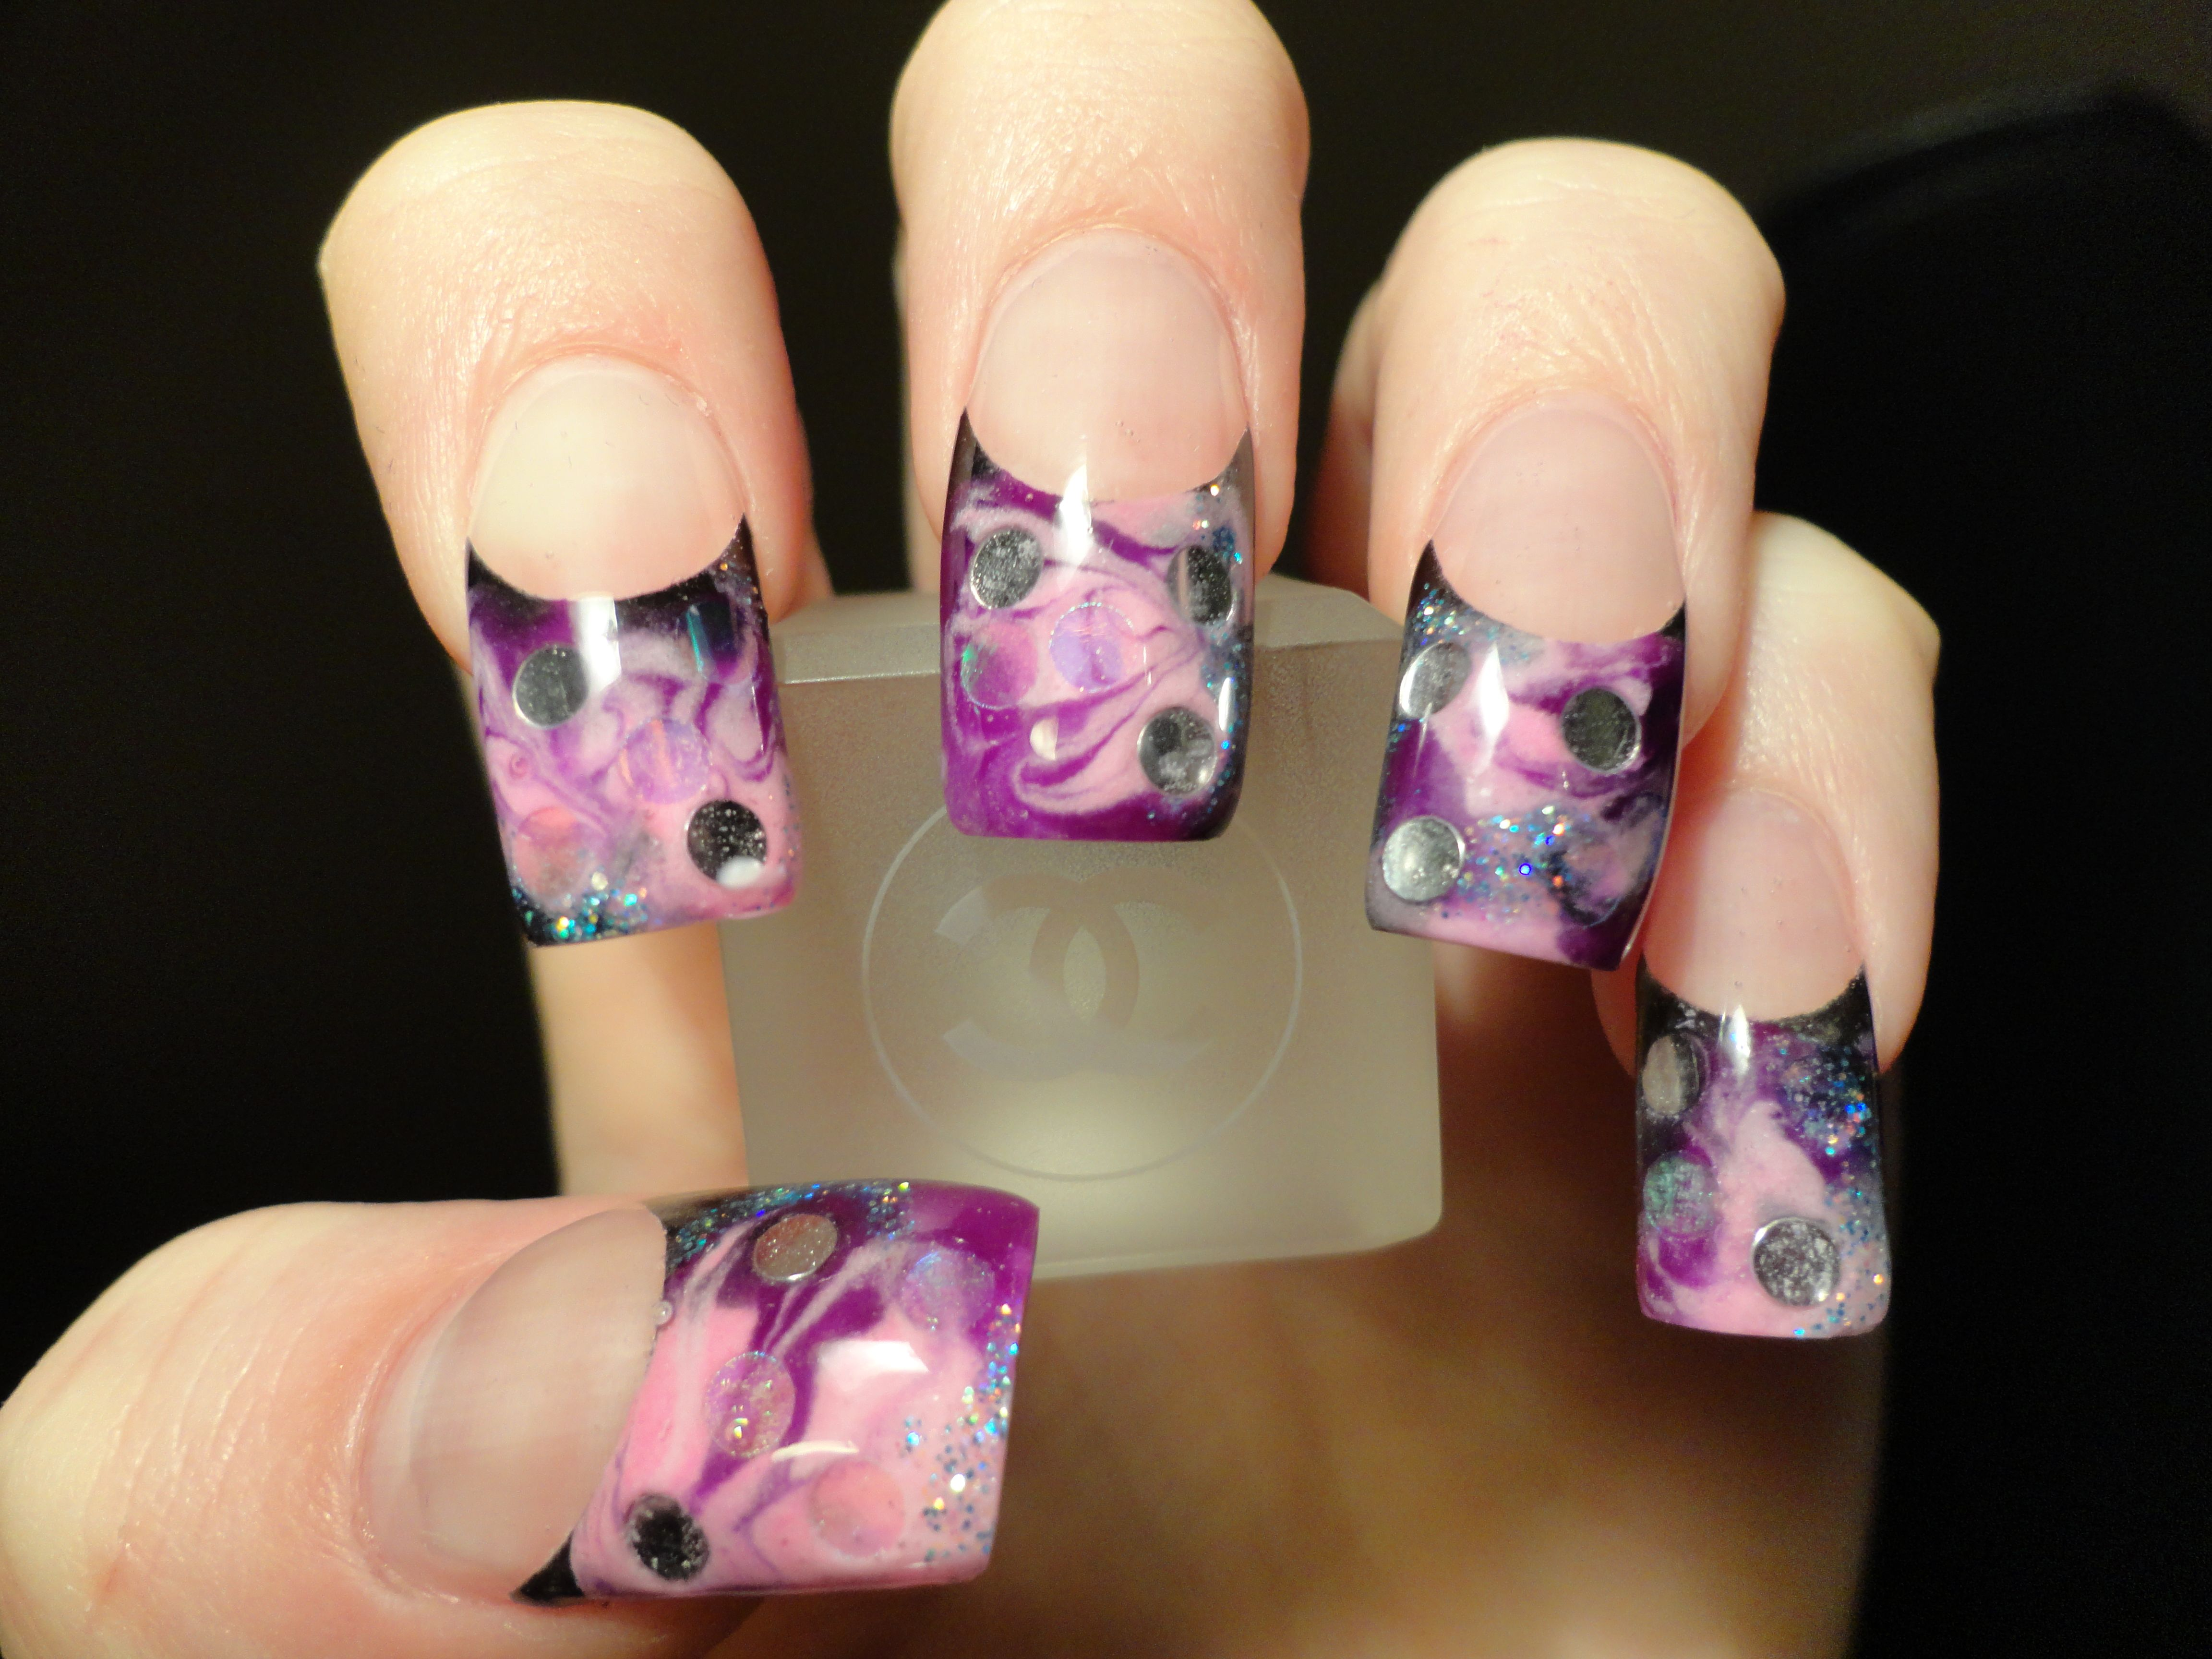 Young nails acrylic nails pinterest young nails acrylics young nails acrylic design artnail prinsesfo Images